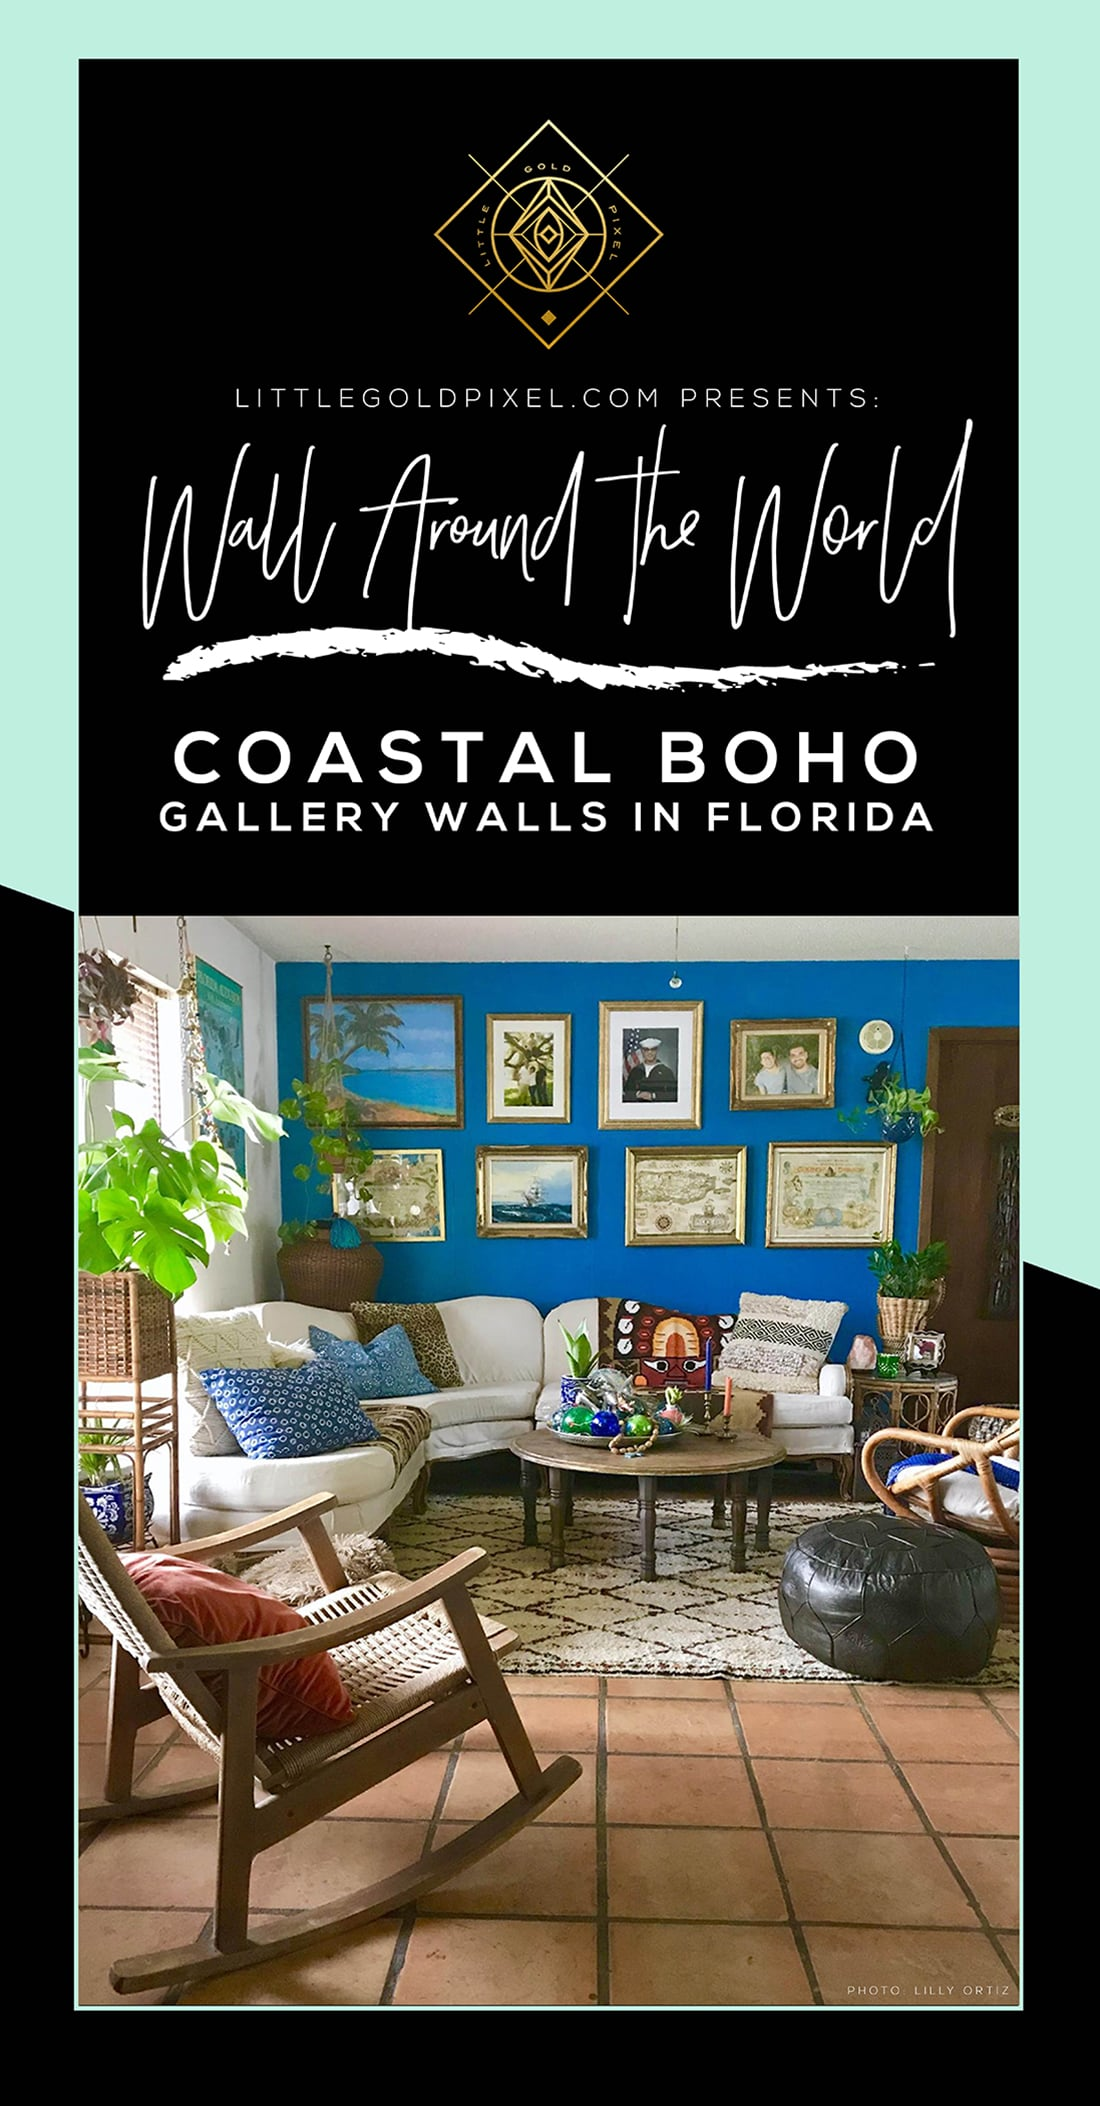 Wall Around the World: A Gallery Wall Series by Little Gold Pixel • Part 8: Coastal Boho Gallery Walls in Florida • Photos © Lilly Ortiz